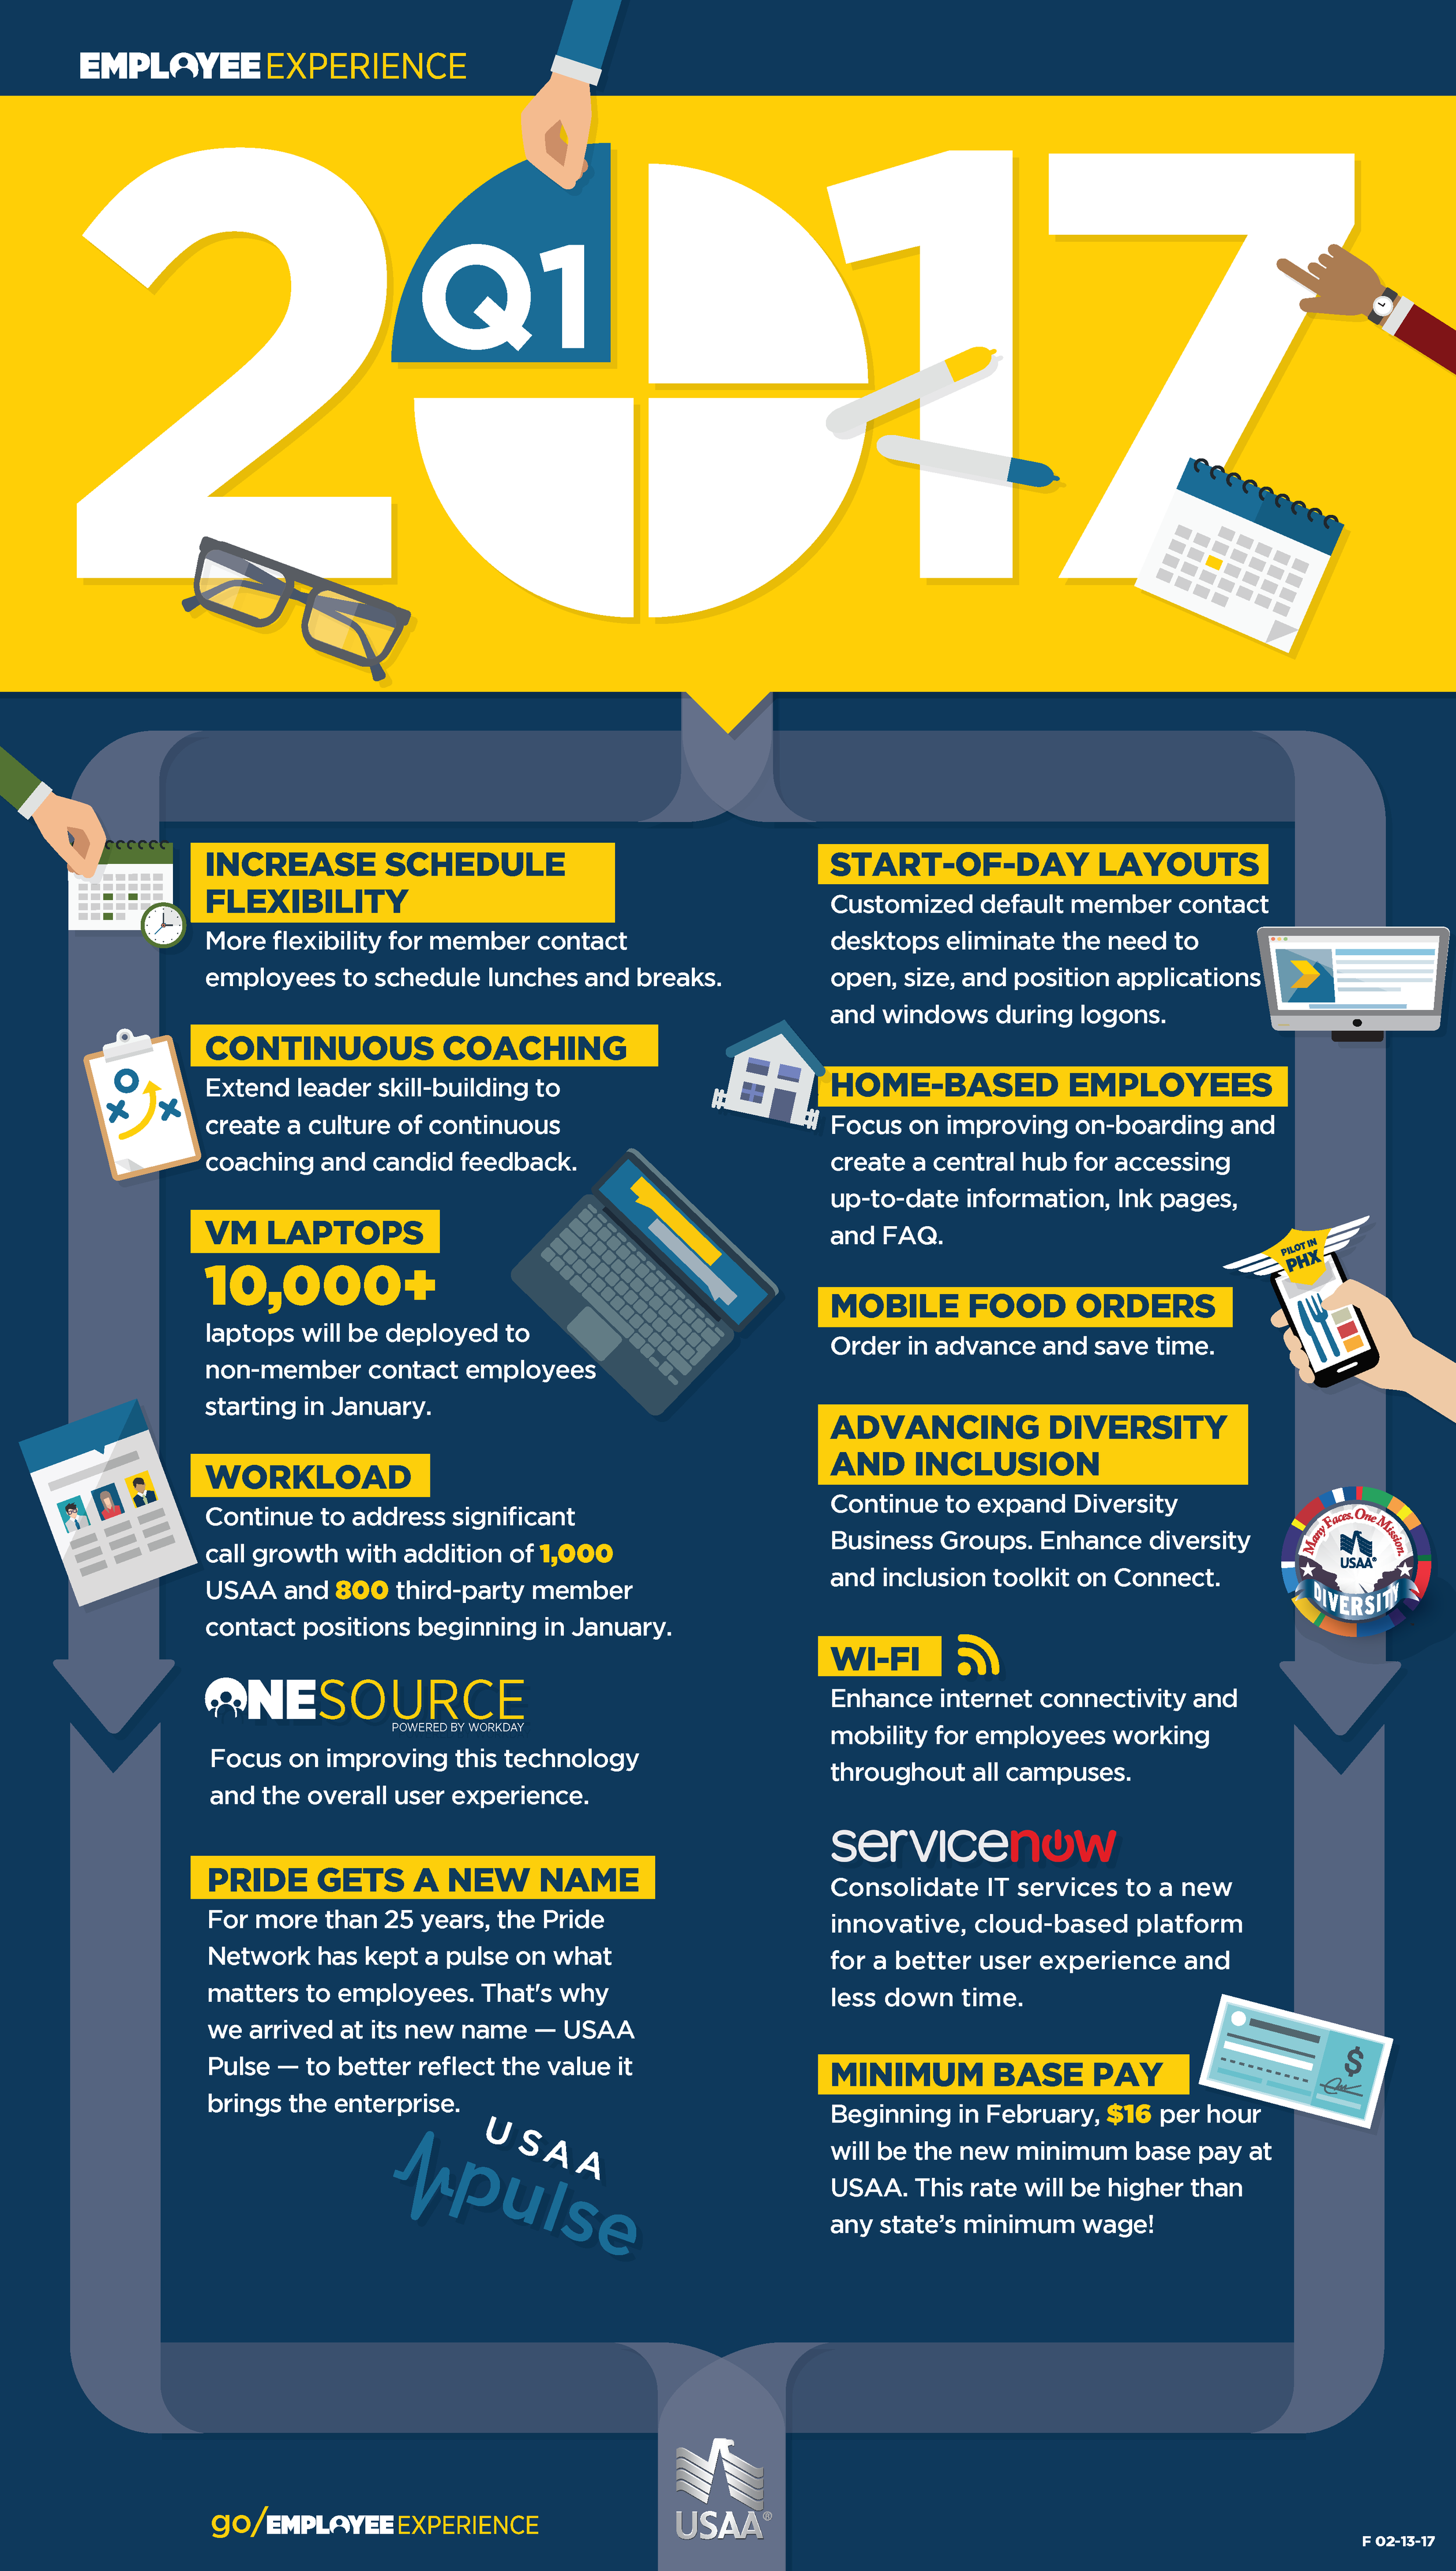 USAA_EE_Infographic_07Q1_02-13-17 copy.png